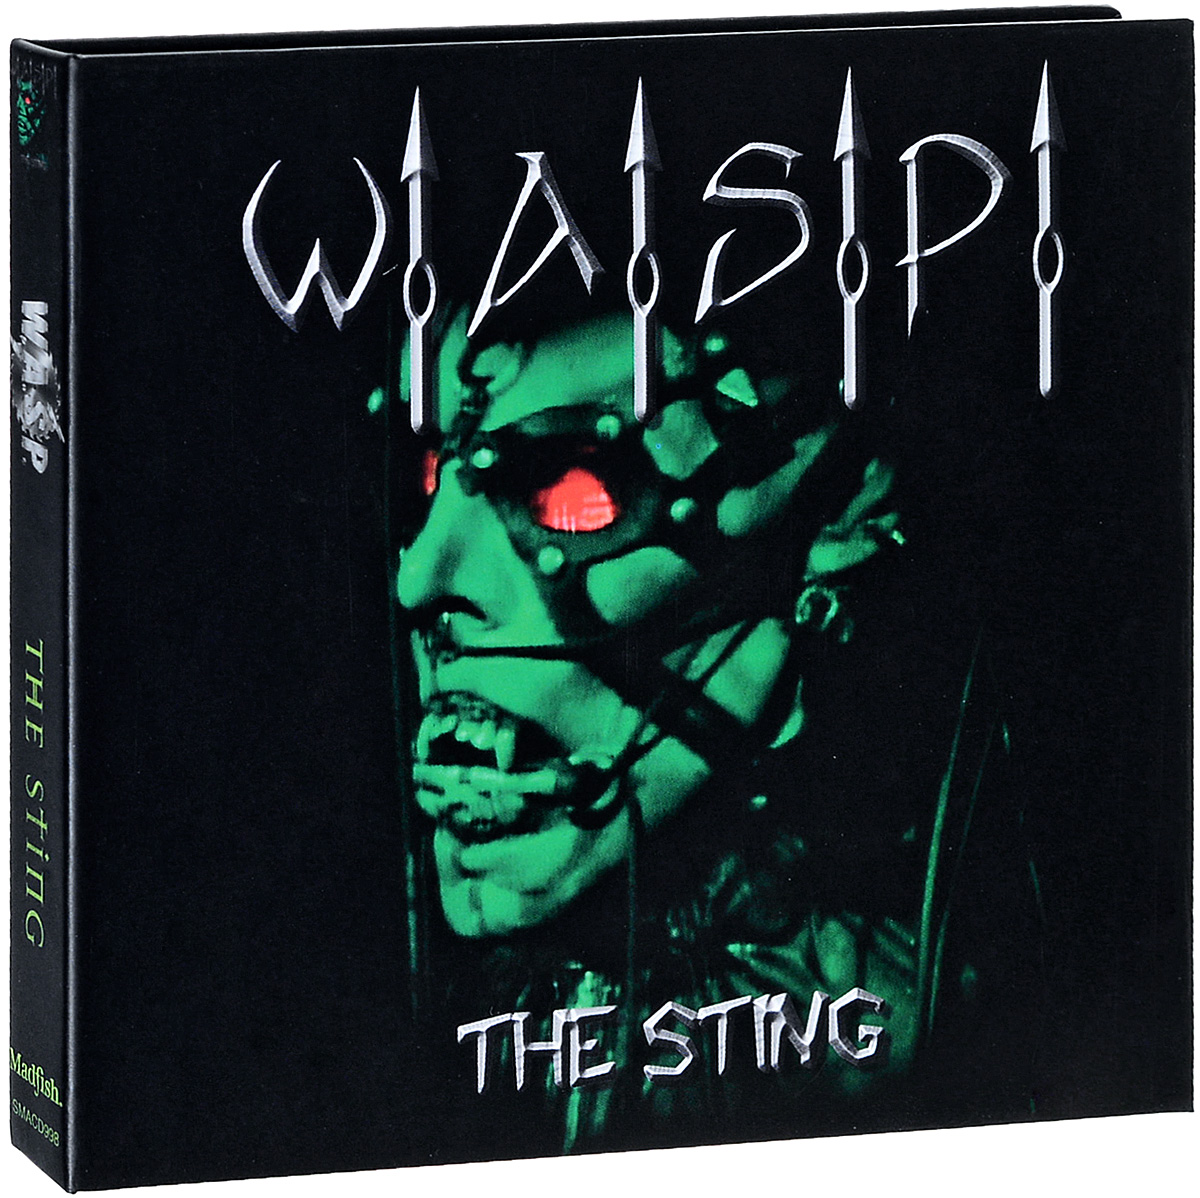 W.A.S.P. - The Sting (Live at the Key Club, L.A.) (DVD + CD) dvd диск igor moisseiev ballet live in paris 1 dvd